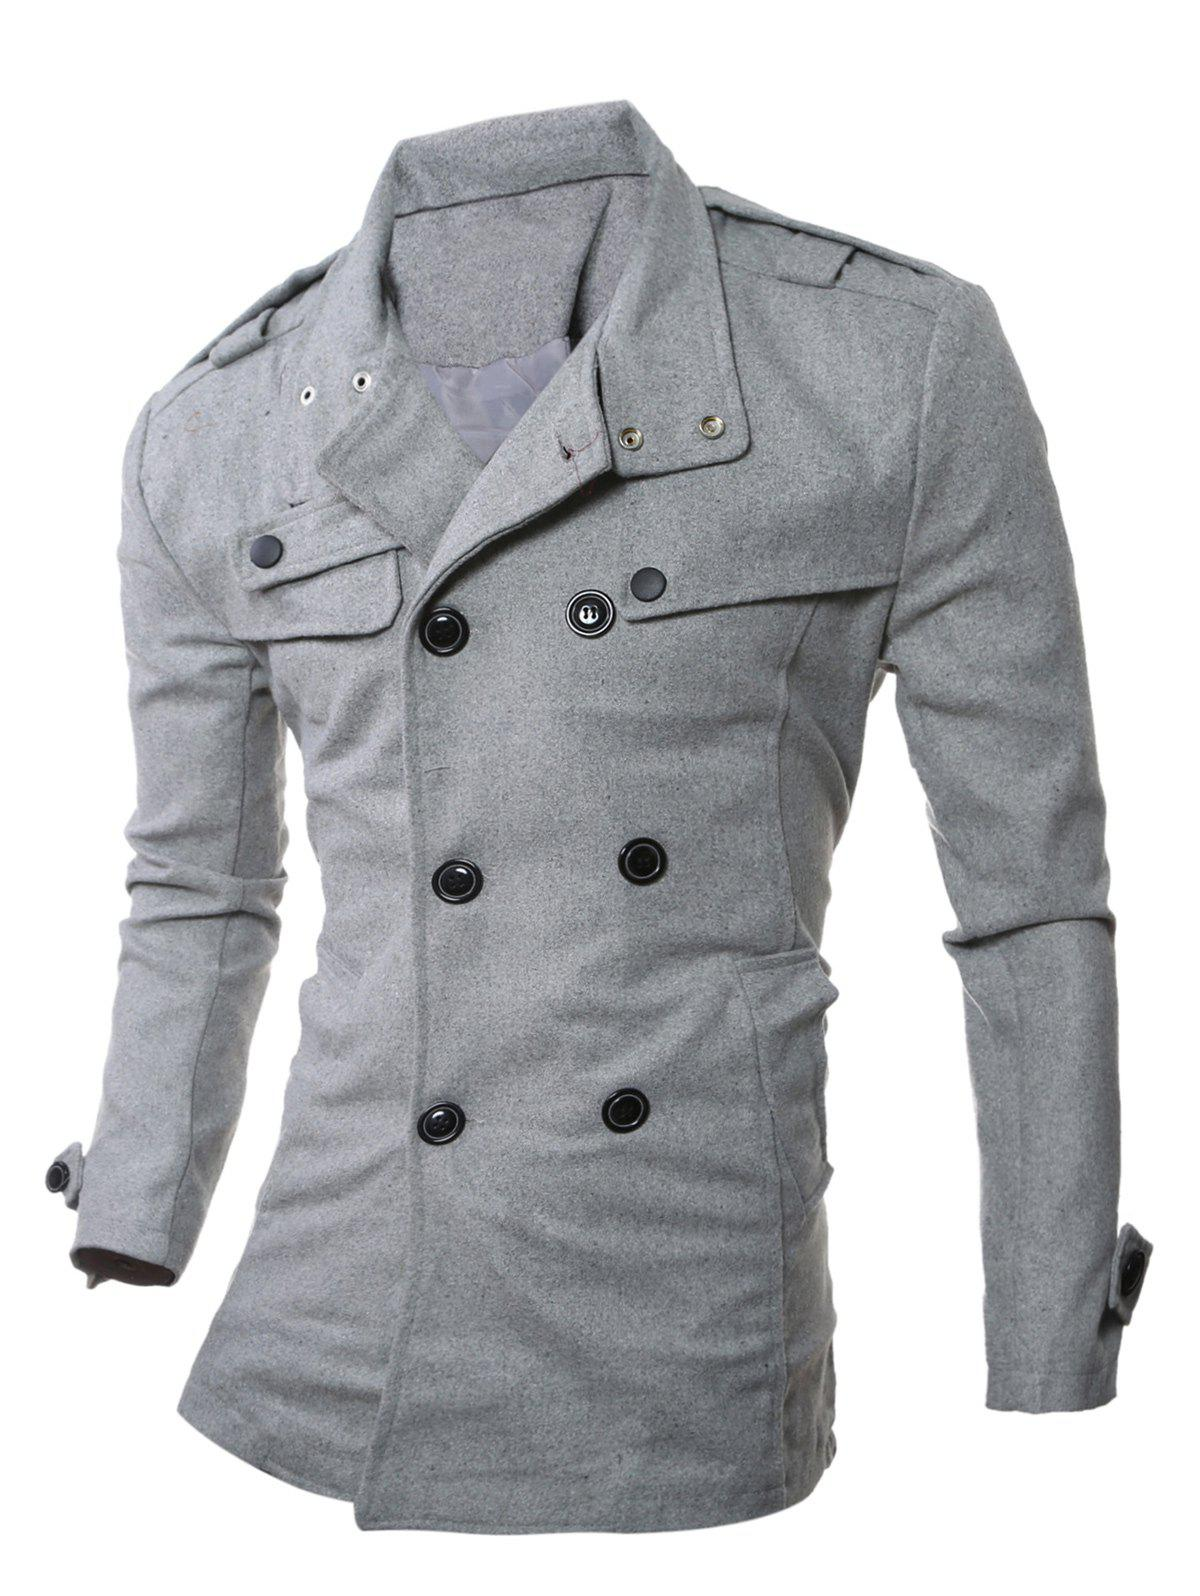 Double Breasted Epaulet Embellished Woolen Coat - GRAY 2XL